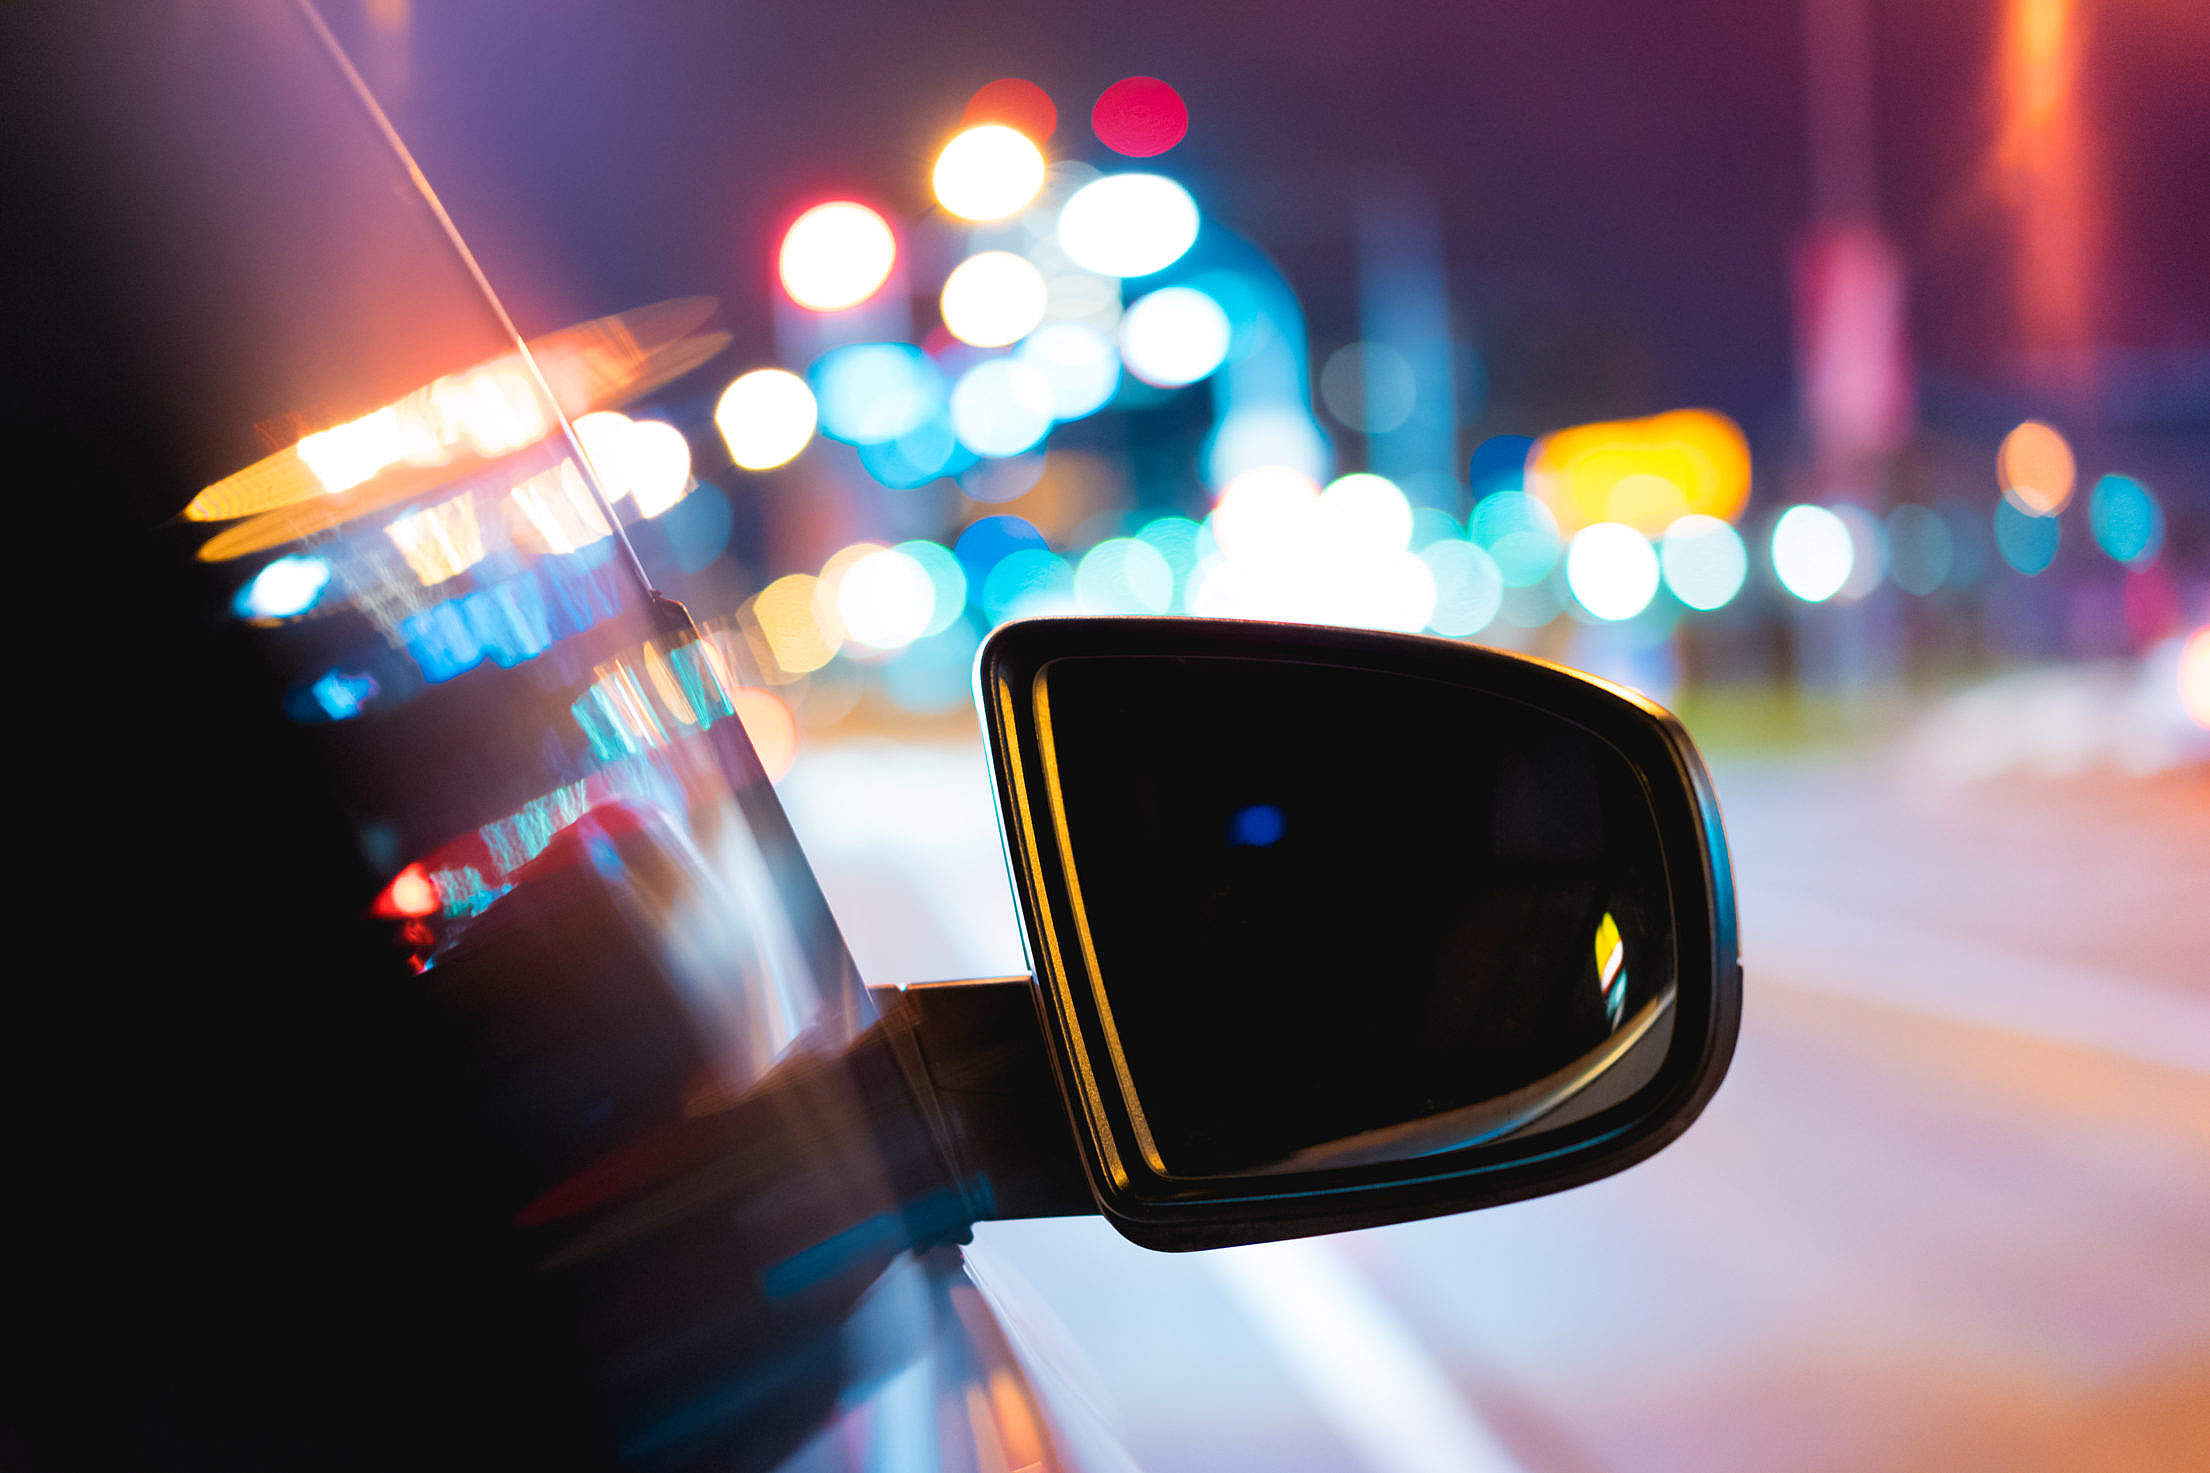 Car Side Rear-View Mirror with City Bokeh Lights Free Stock Photo